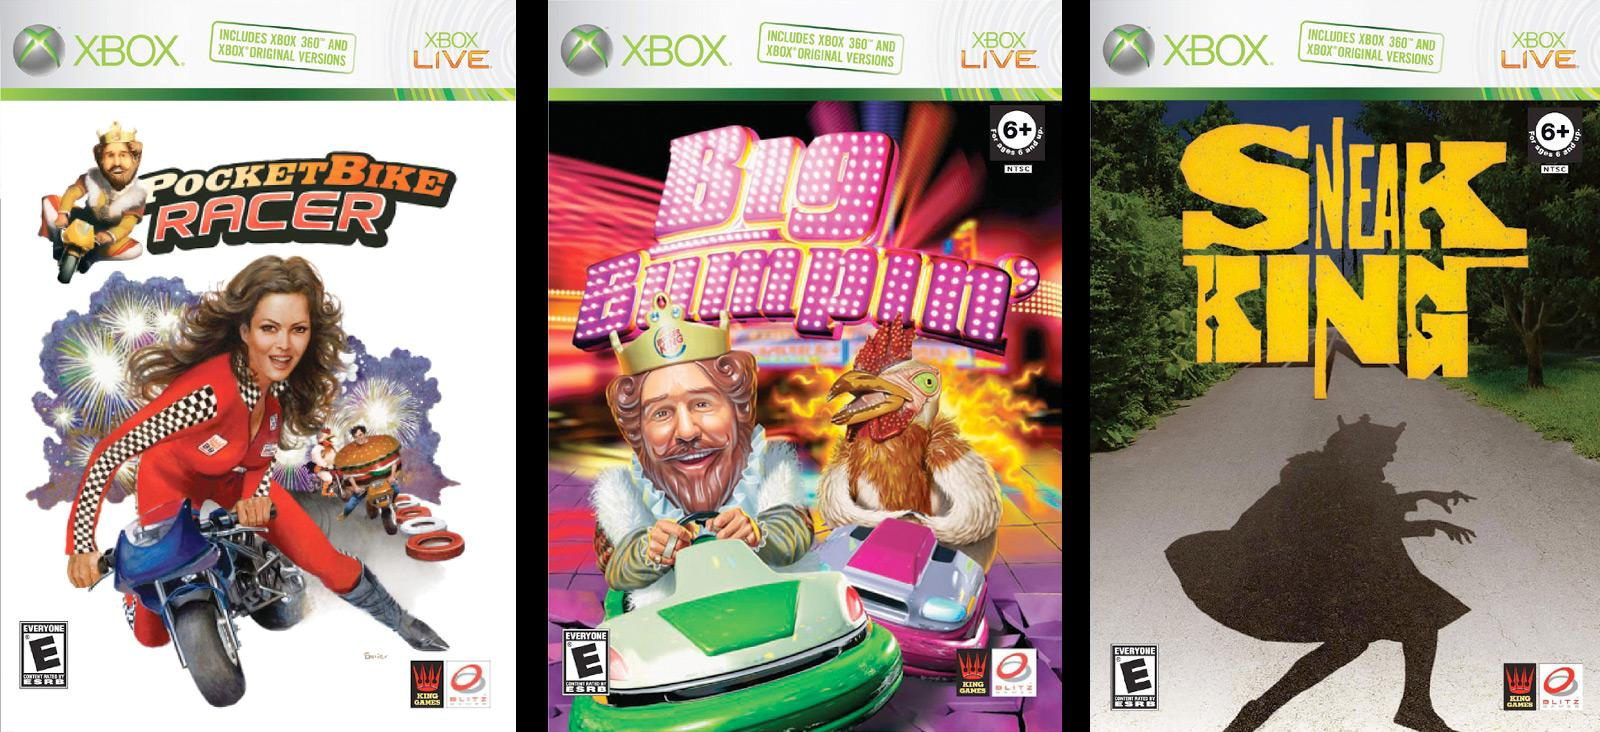 Burger King Ambient Ad -  Xbox games